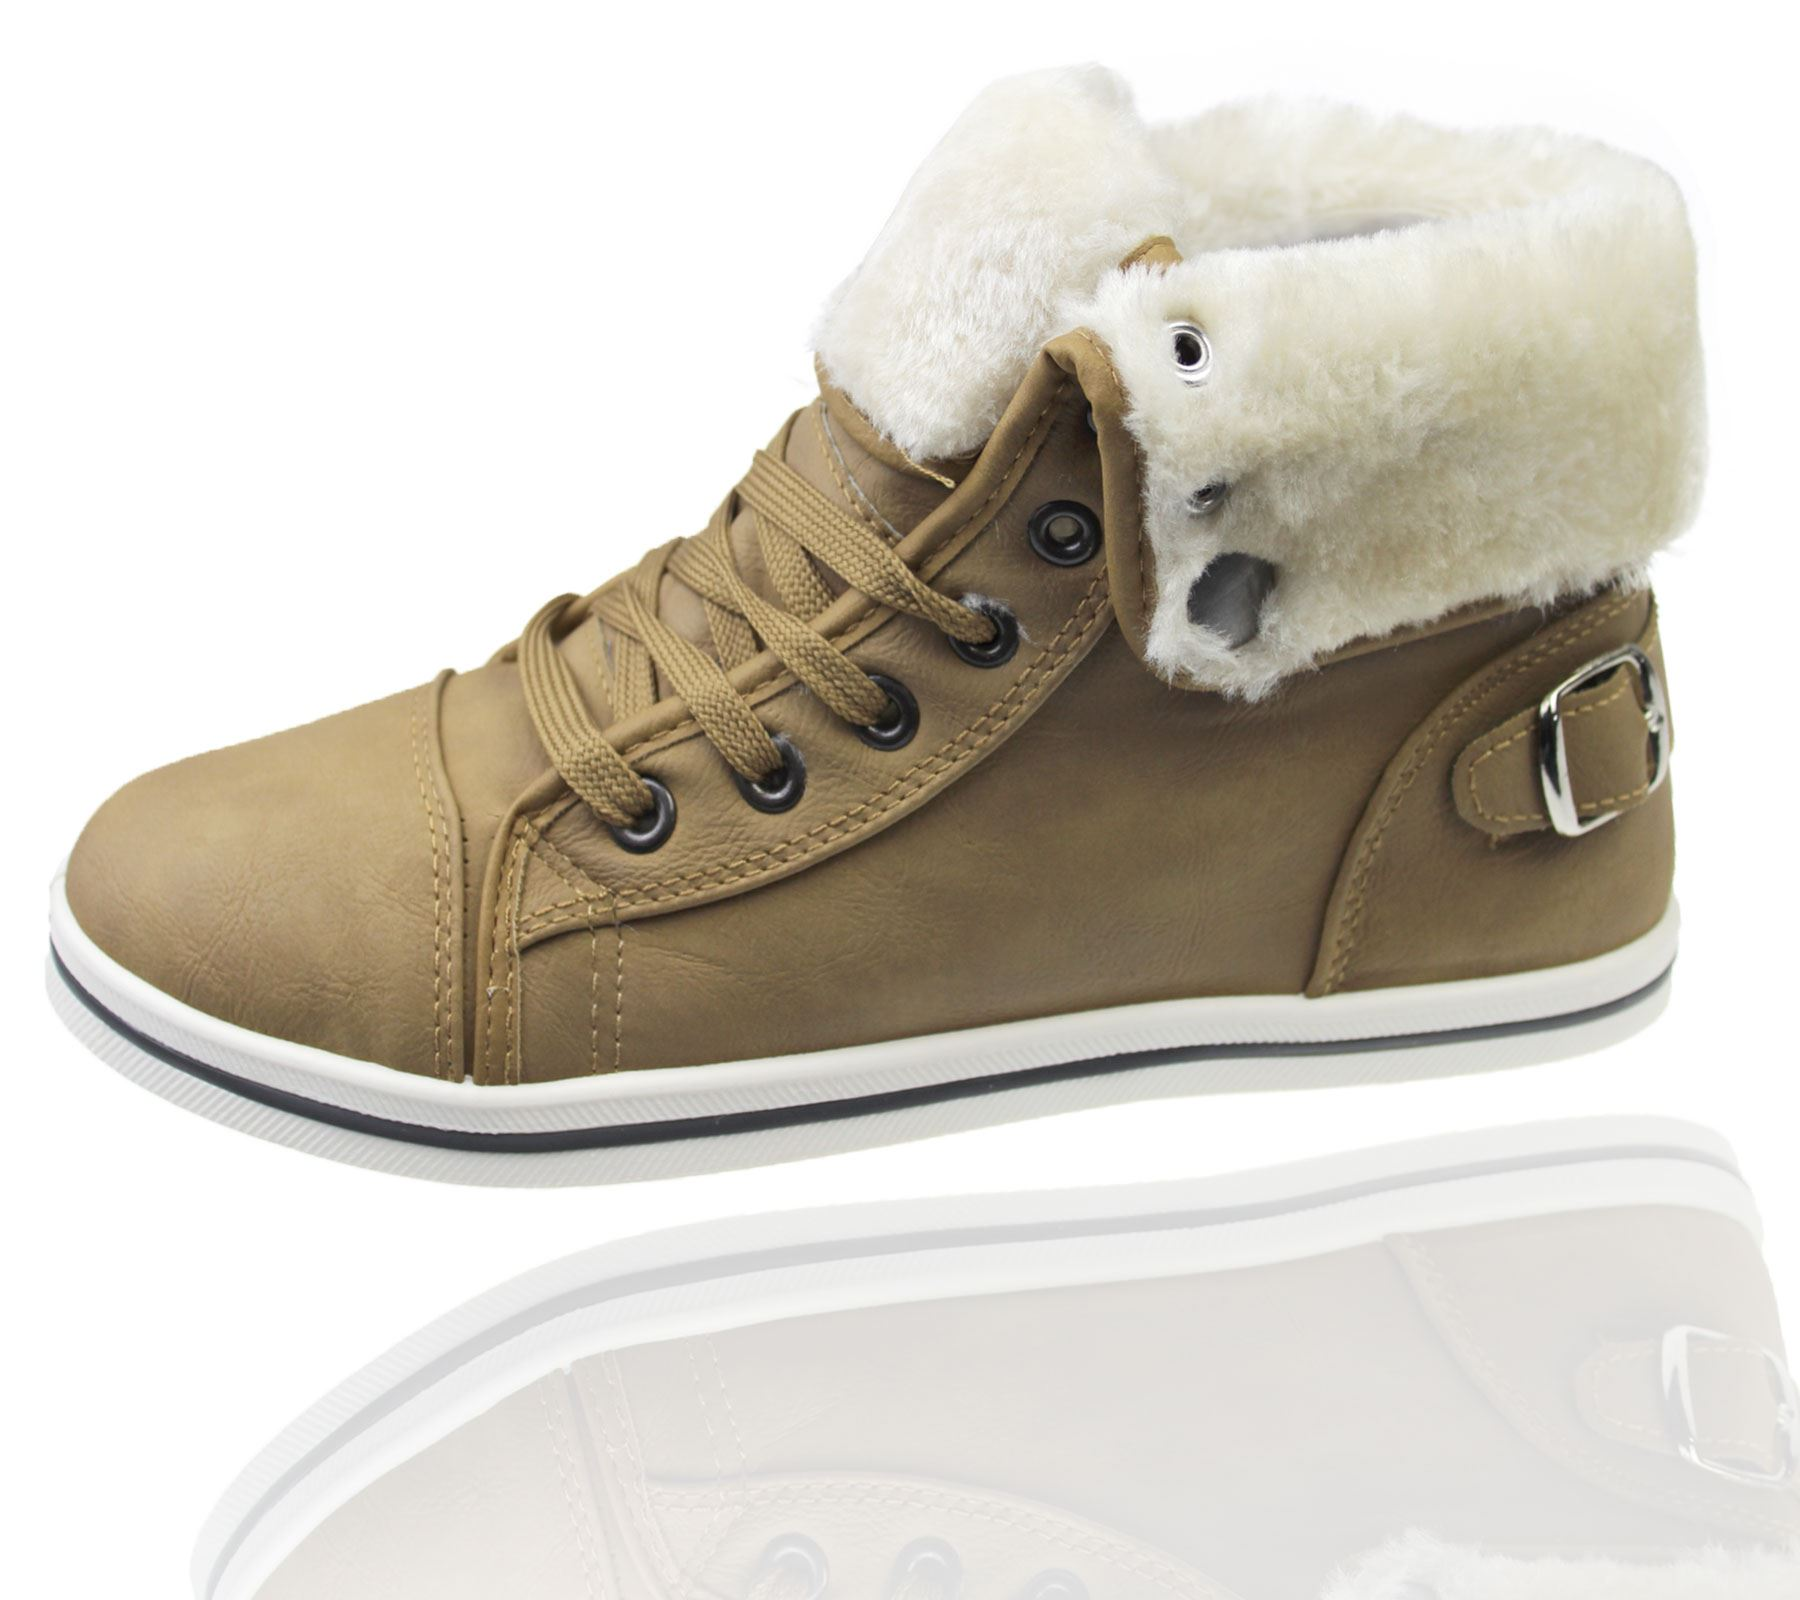 Girls-Boots-Womens-Warm-Lined-High-Top-Ankle-Trainer-Ladies-Winter-Shoes-Size miniatura 106